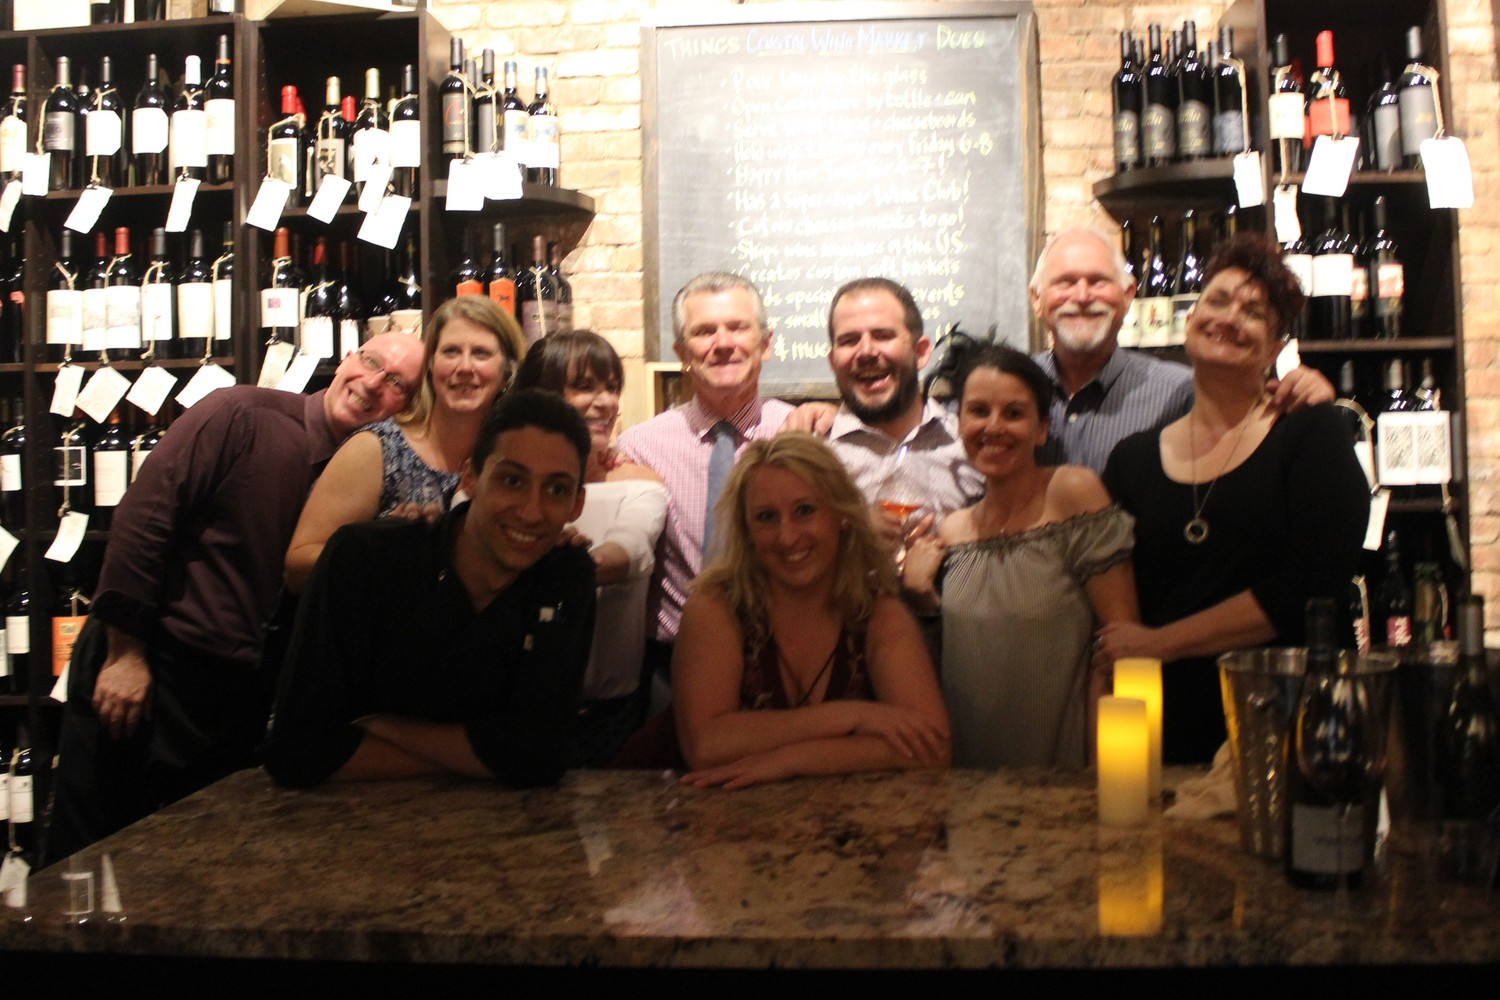 Julian Hardy, Michelle Hawk, Chef Jimmy Coffey, Shirley Mahoney, Dennis Mahoney, Michelle Liddy, Steve Lourie, Shaun Lourie, Allen Horne and Beth Leitter gather at the second anniversary celebration of Coastal Wine Market & Tasting Room on June 16.